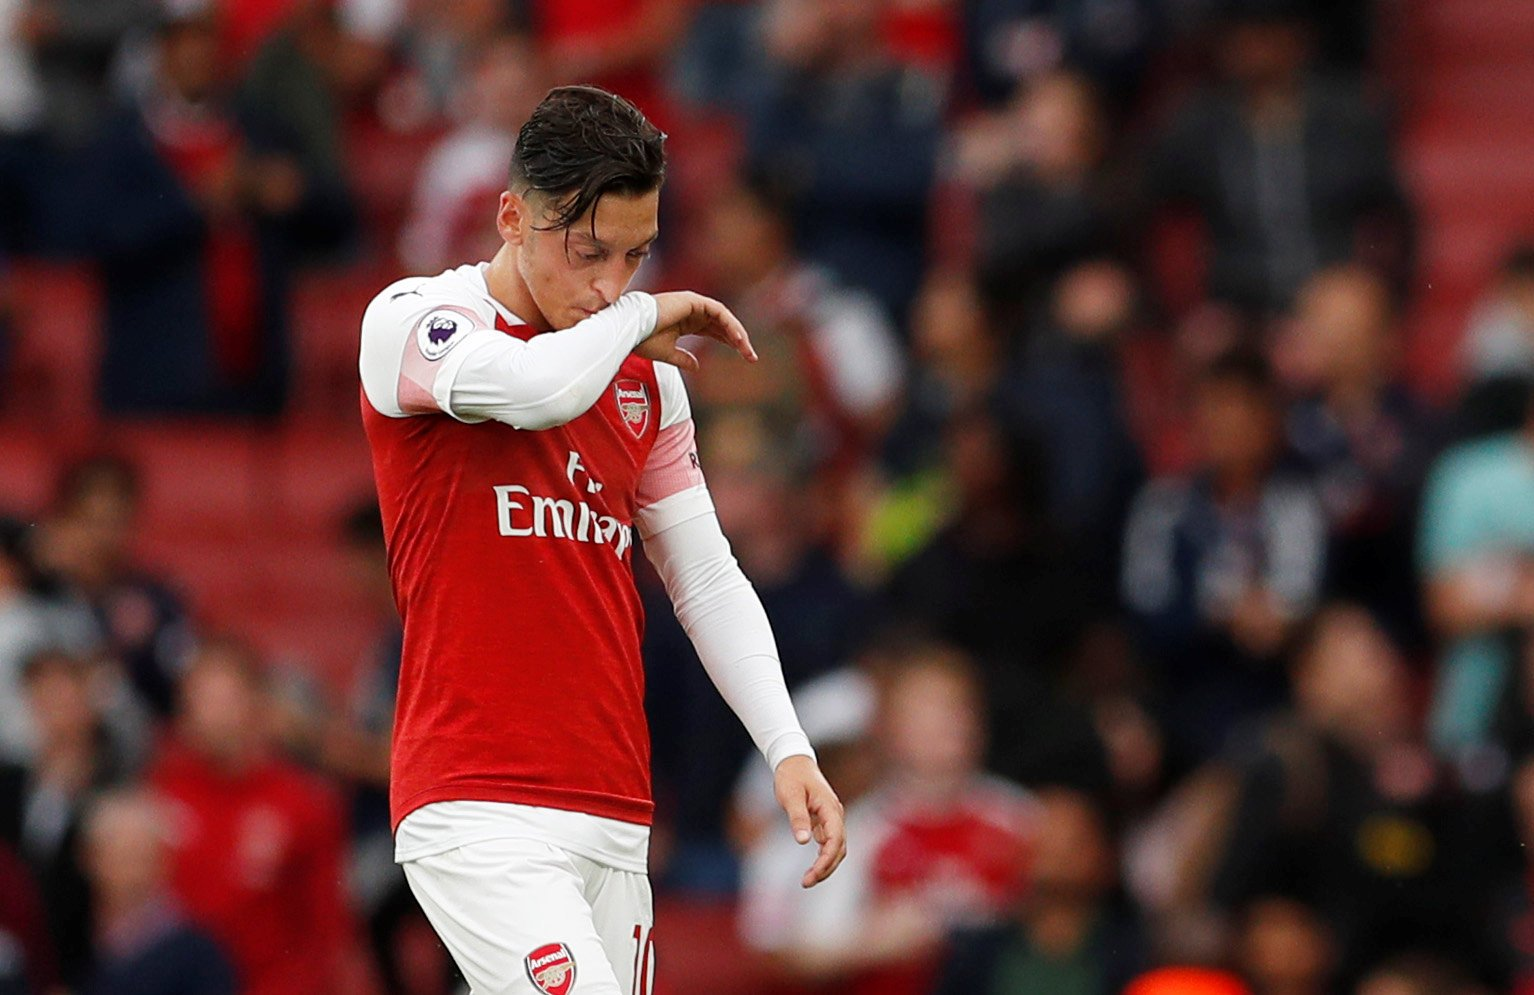 Time for Emery to swallow his pride and build Arsenal's attack around Mesut Ozil